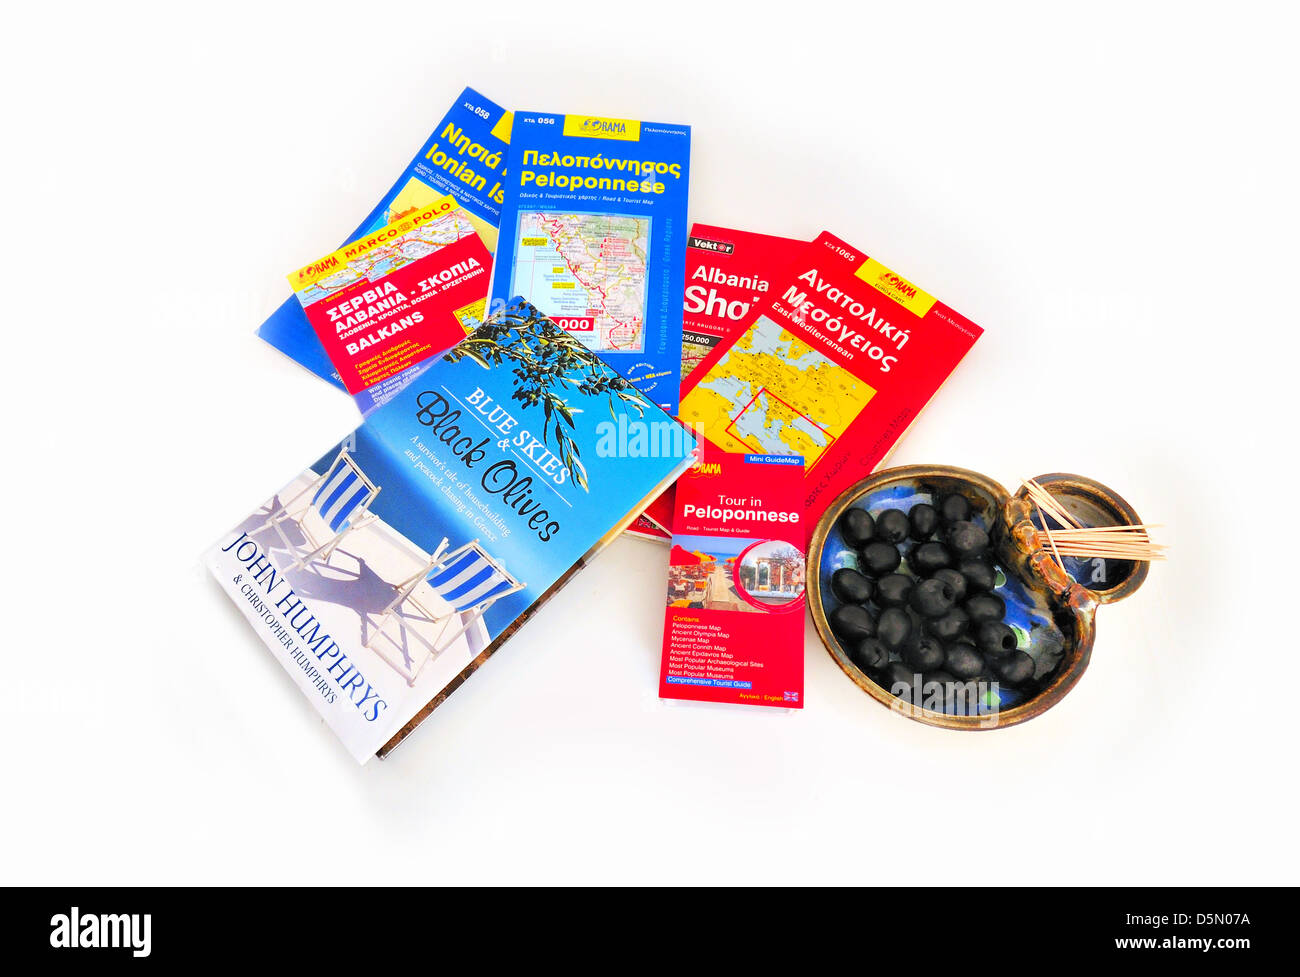 Pending road trip to the Peloponnese Greece  with John Humphreys Blue skies &Black Olives inspirational  book - Stock Image